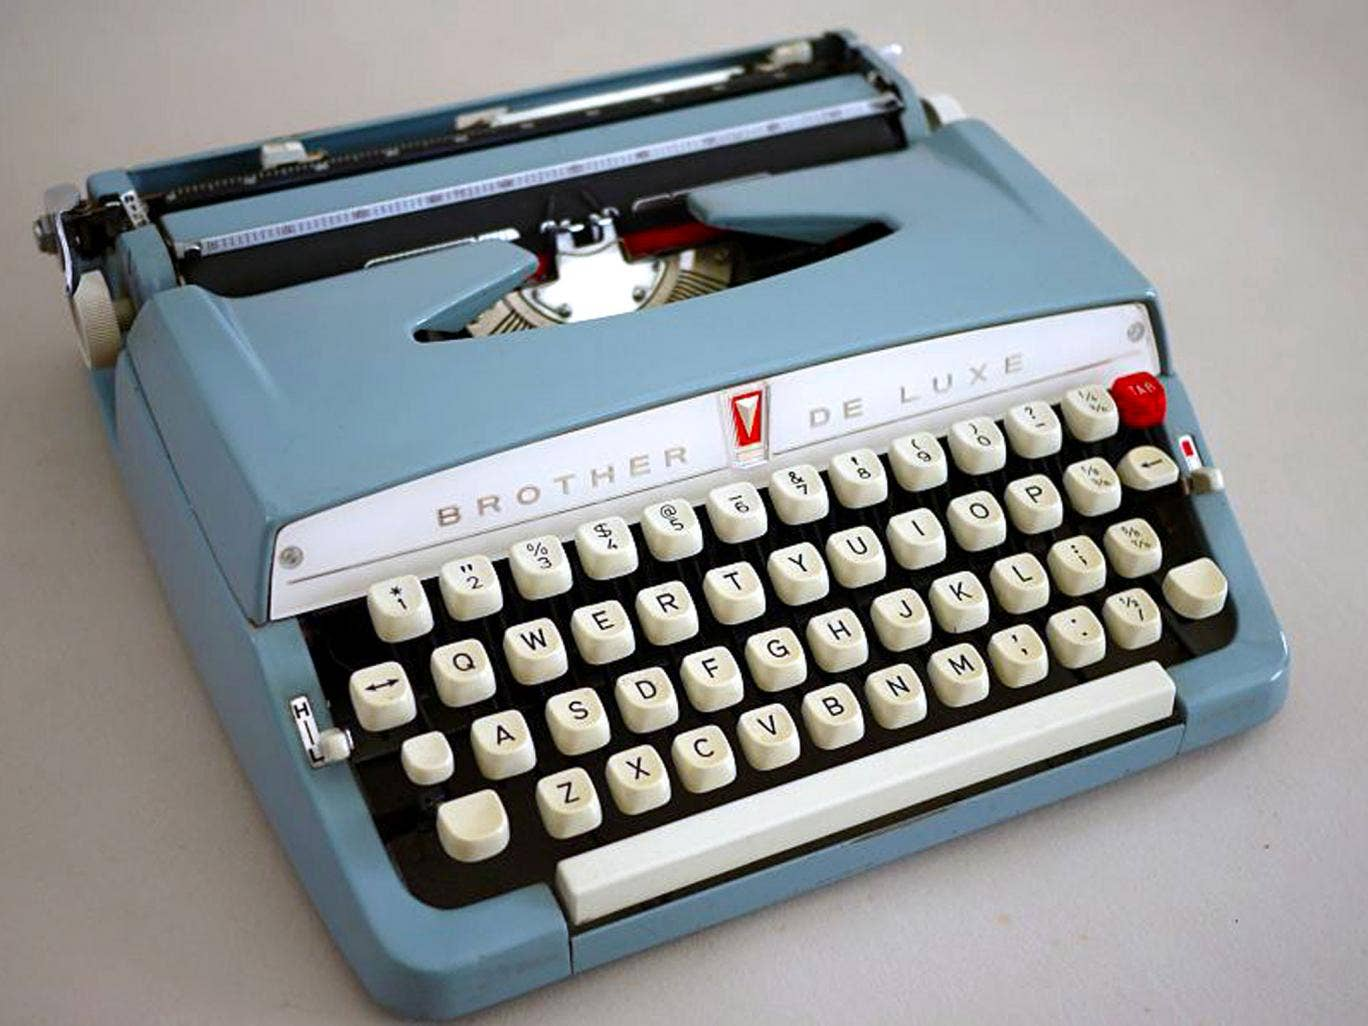 Playing to type: Anne pledged to write 50,000 words in November